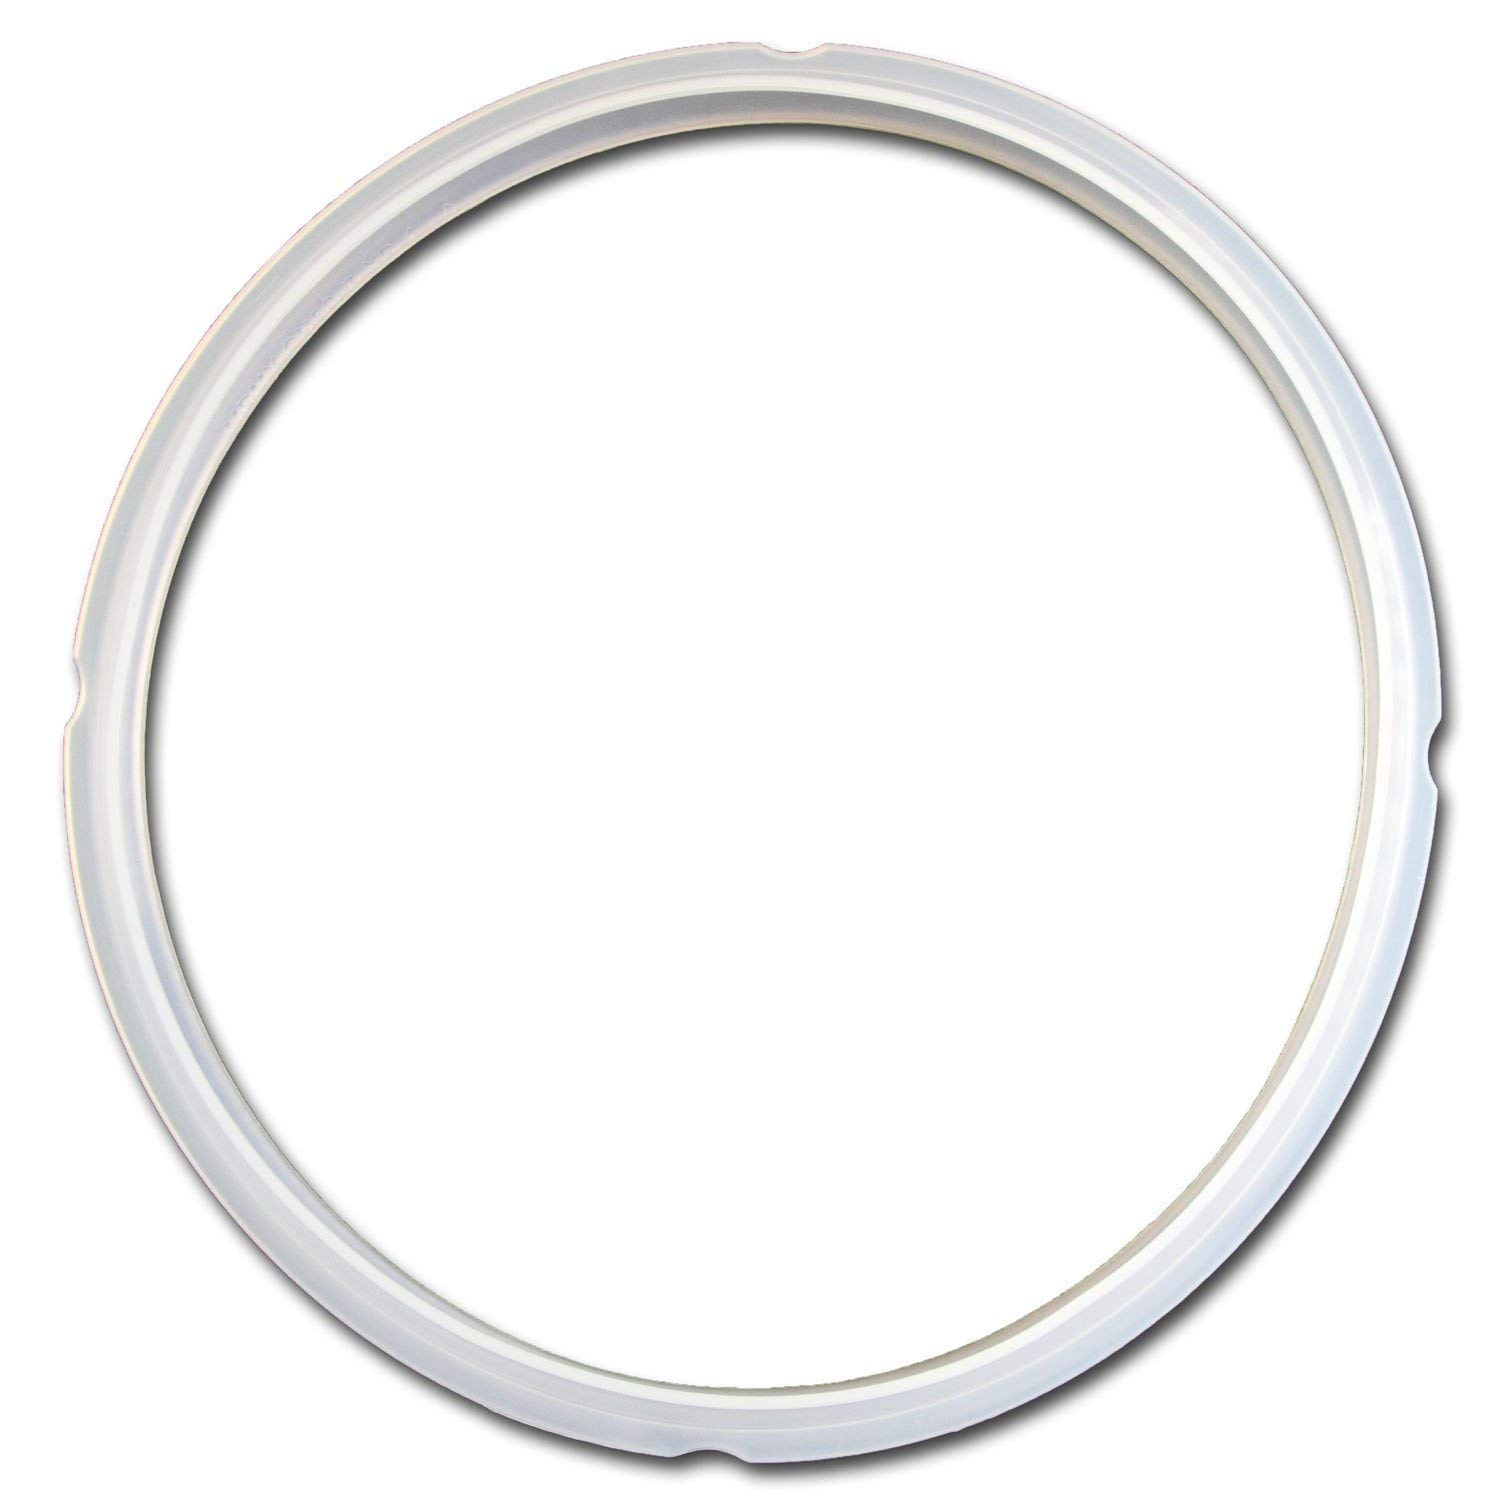 Silicone gasket For SECURA 6-IN-1 Electric Pressure Cooker Model EPC-S600